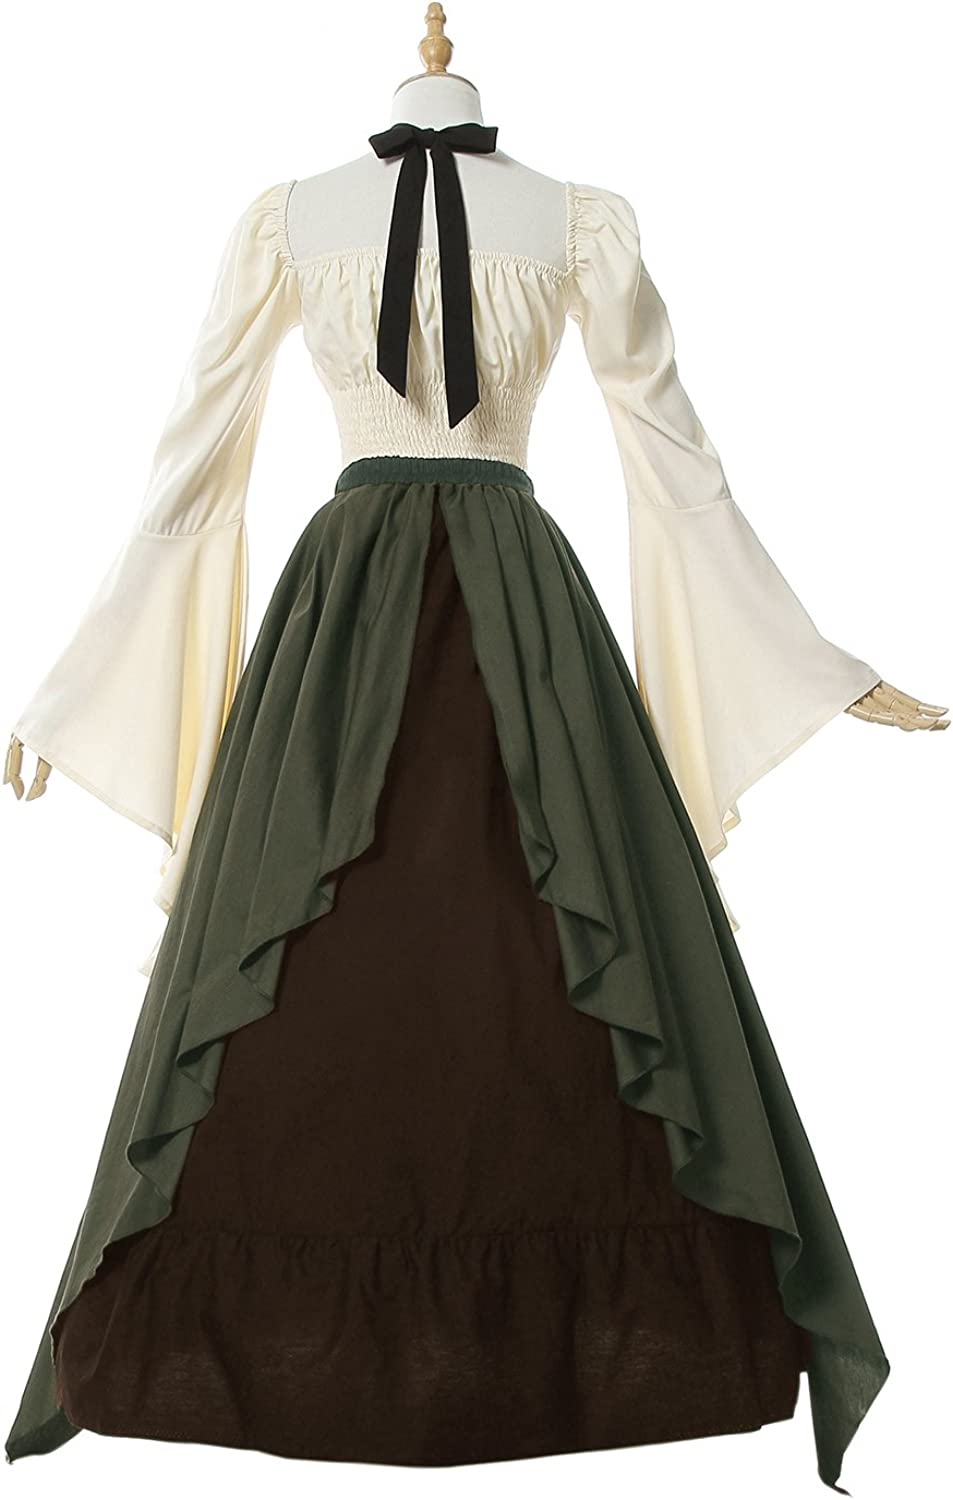 NSPSTT Victorian Dress Renaissance Costume Women Gothic Witch Dress Medieval Wedding Dress